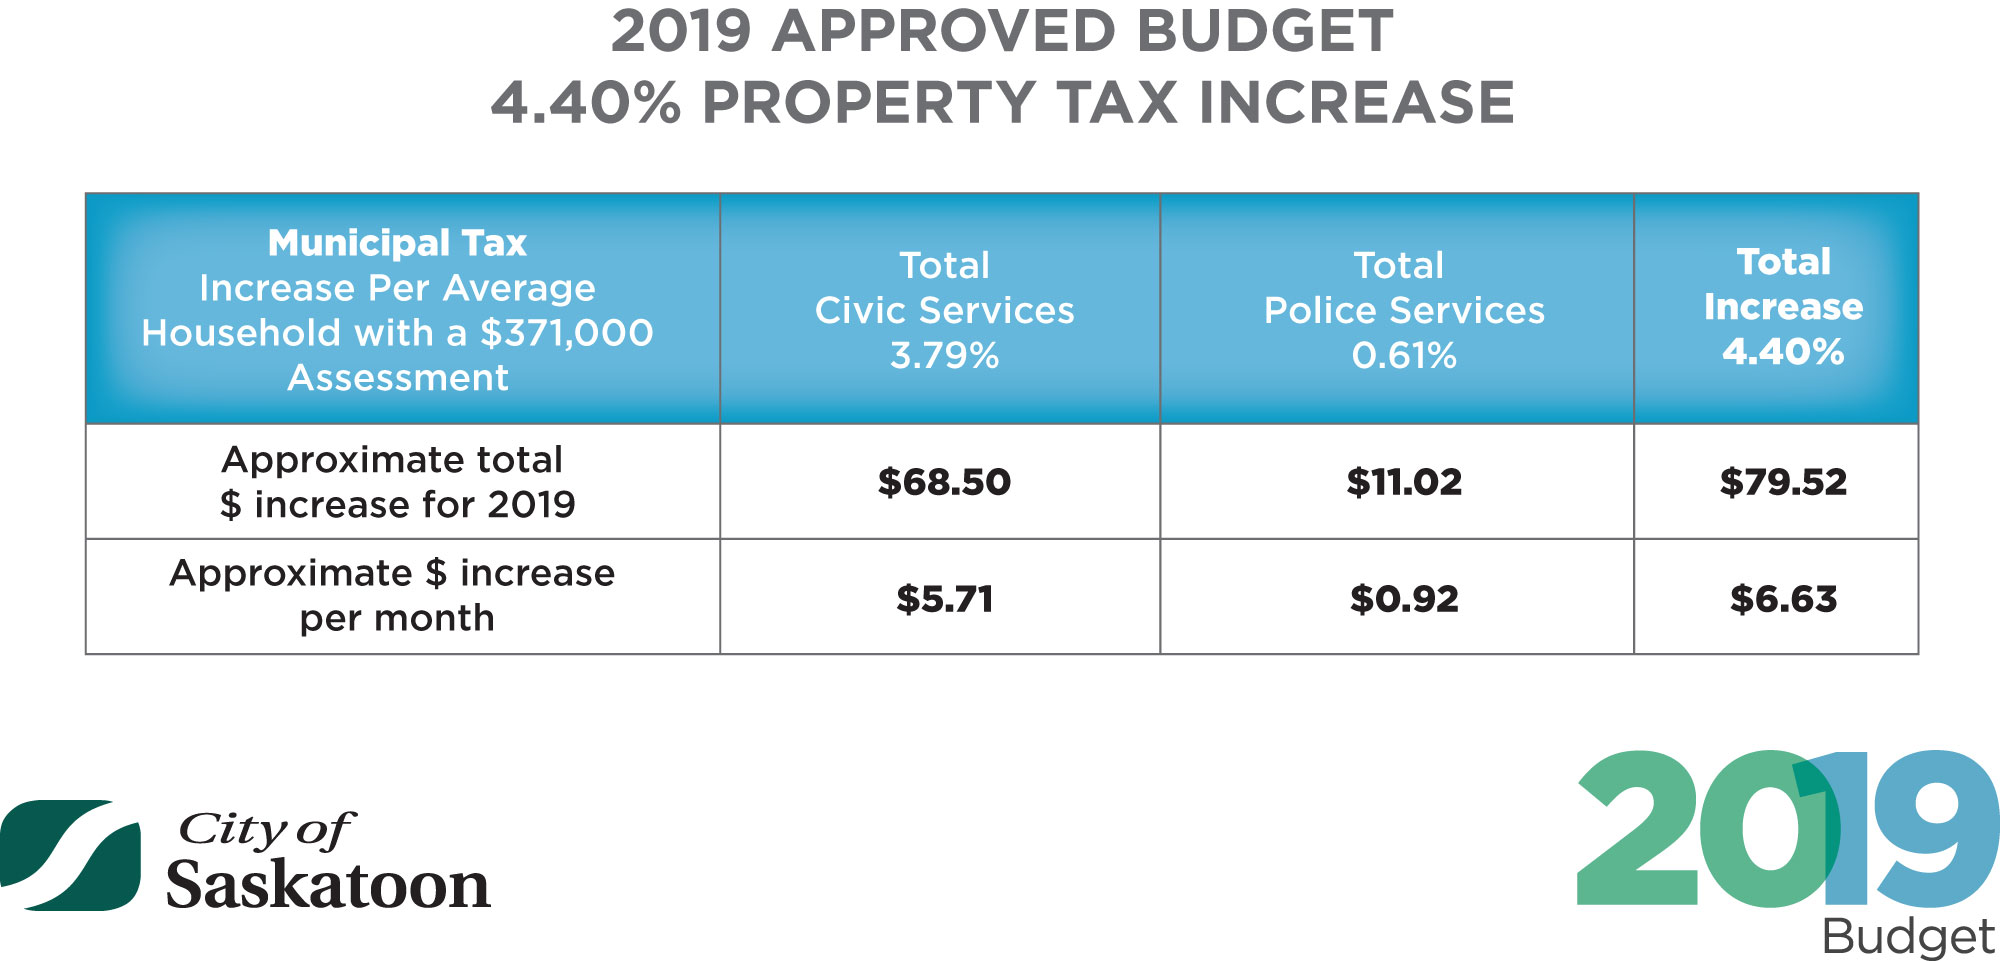 2019_APPROVED_BUDGET_PROPERTY_TAX_INCREASE_DEC_13.jpg